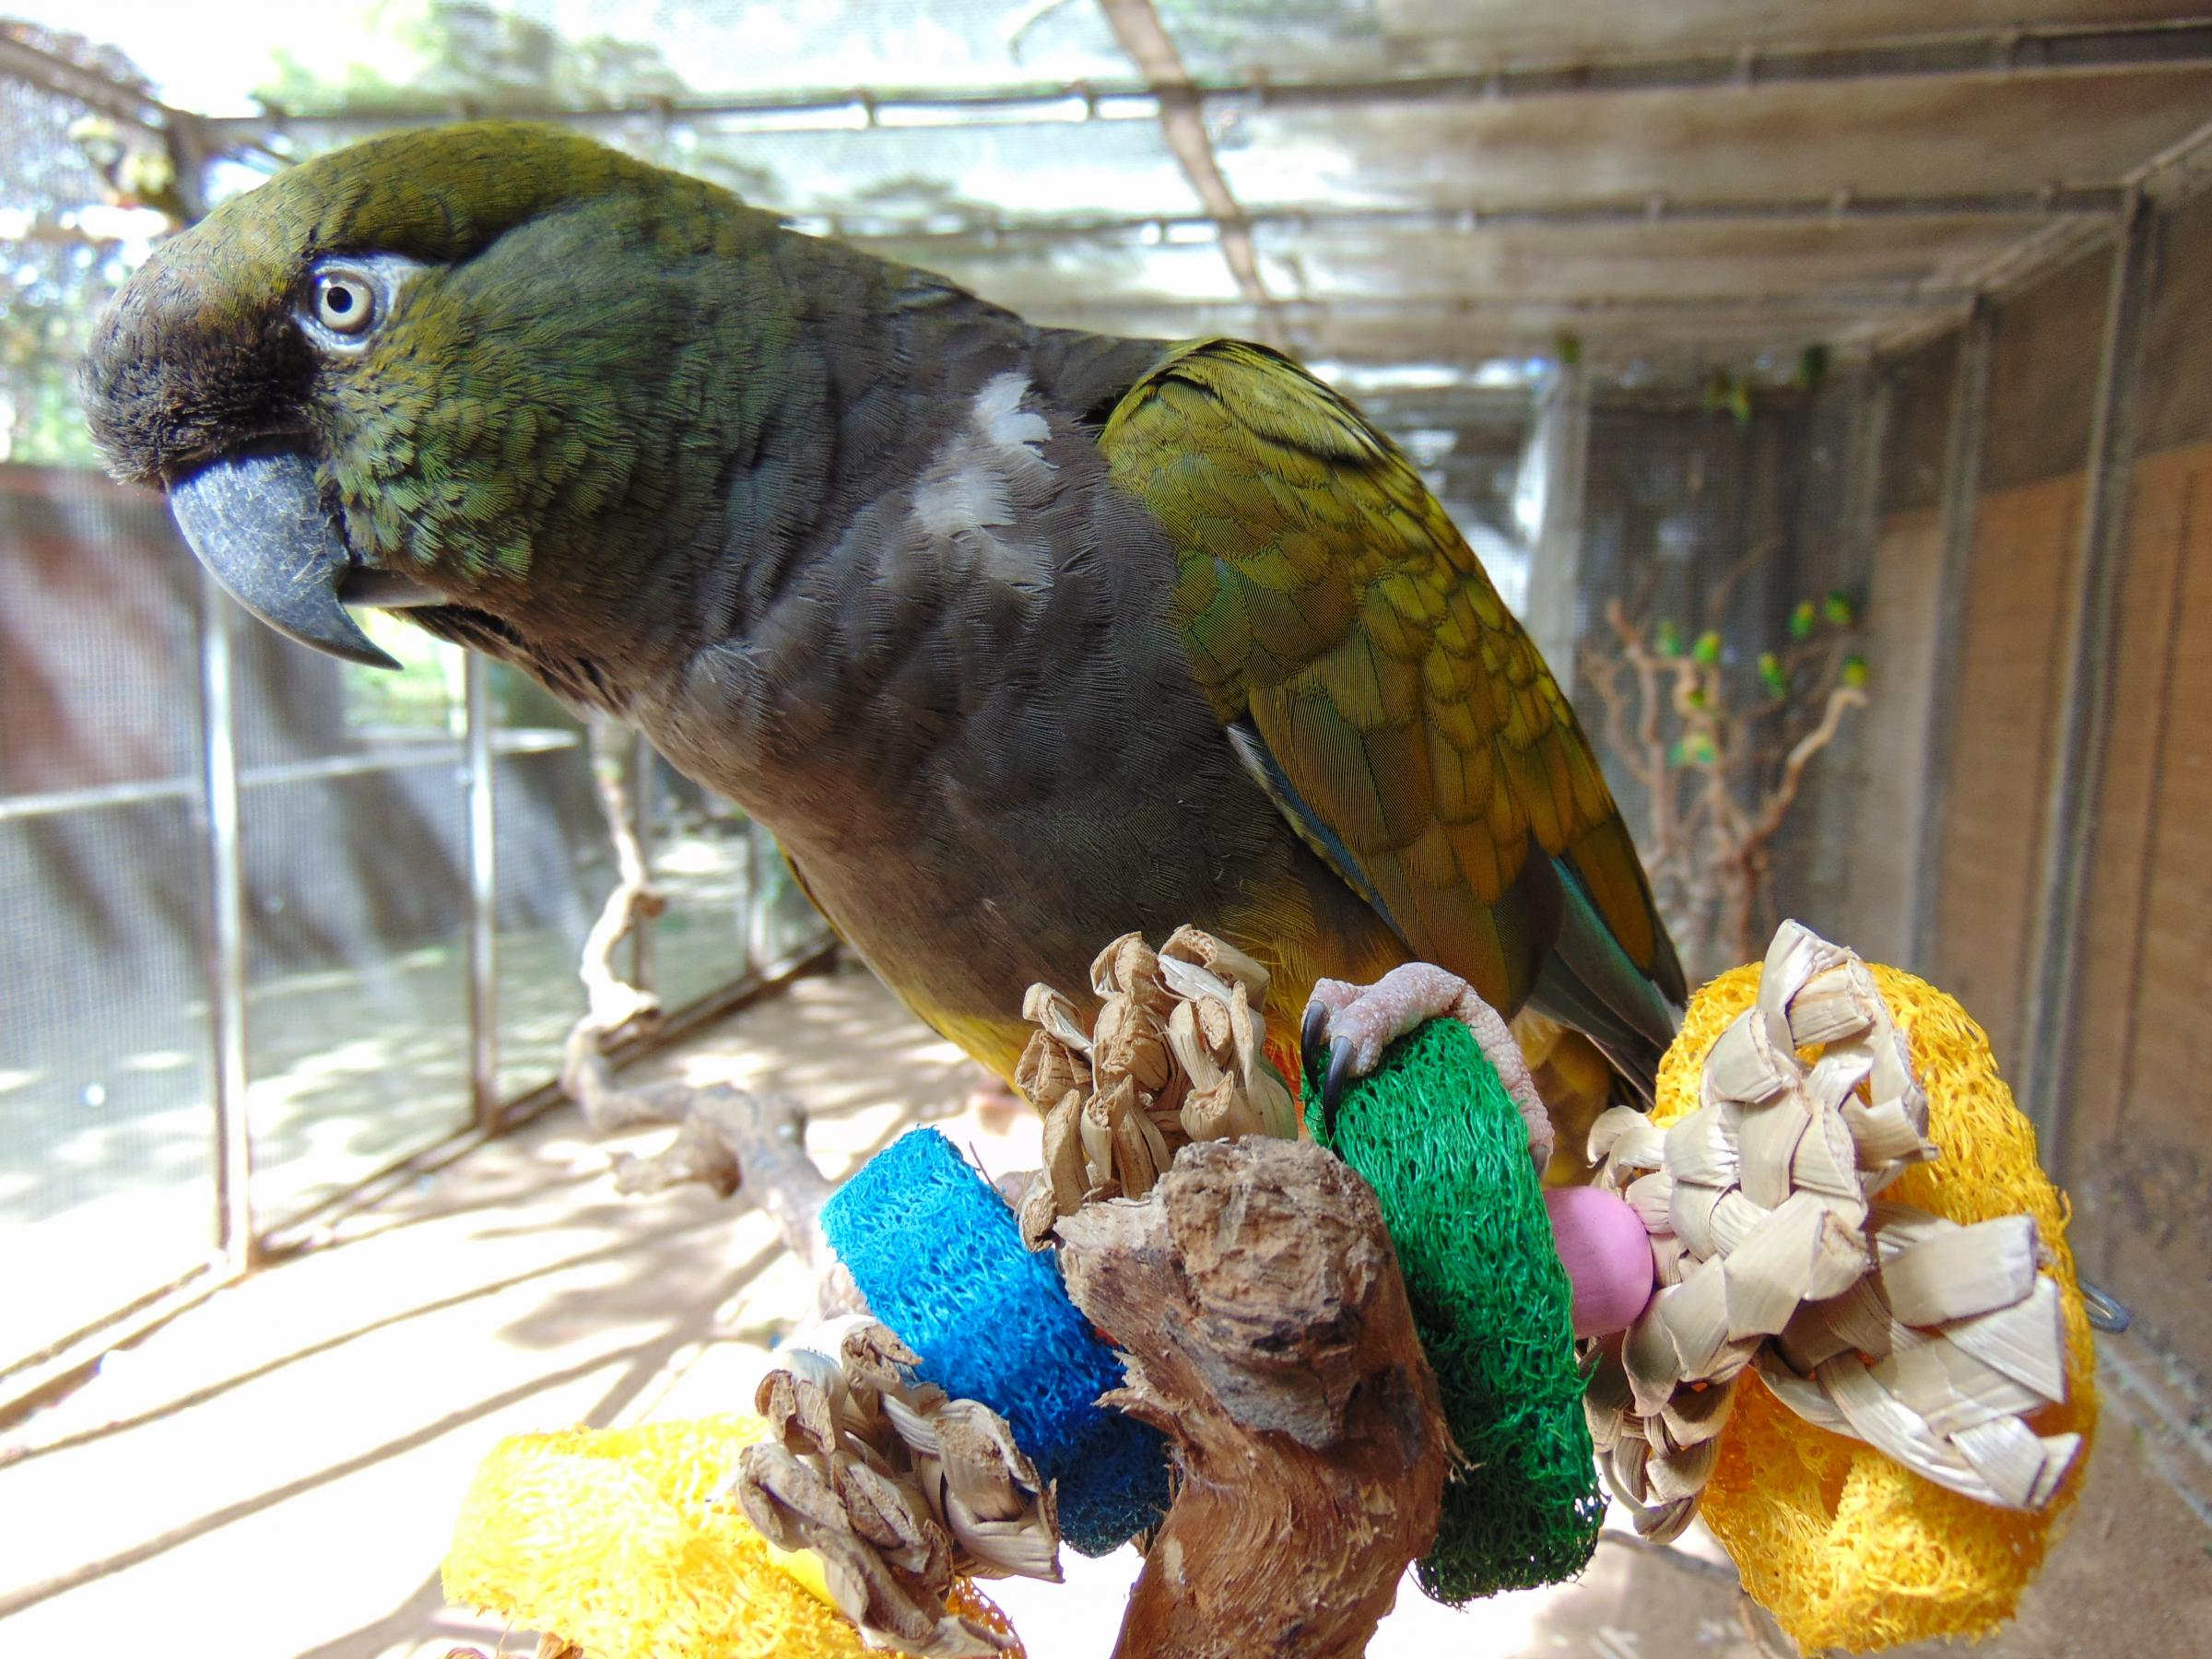 One of the conures keeping a low profile